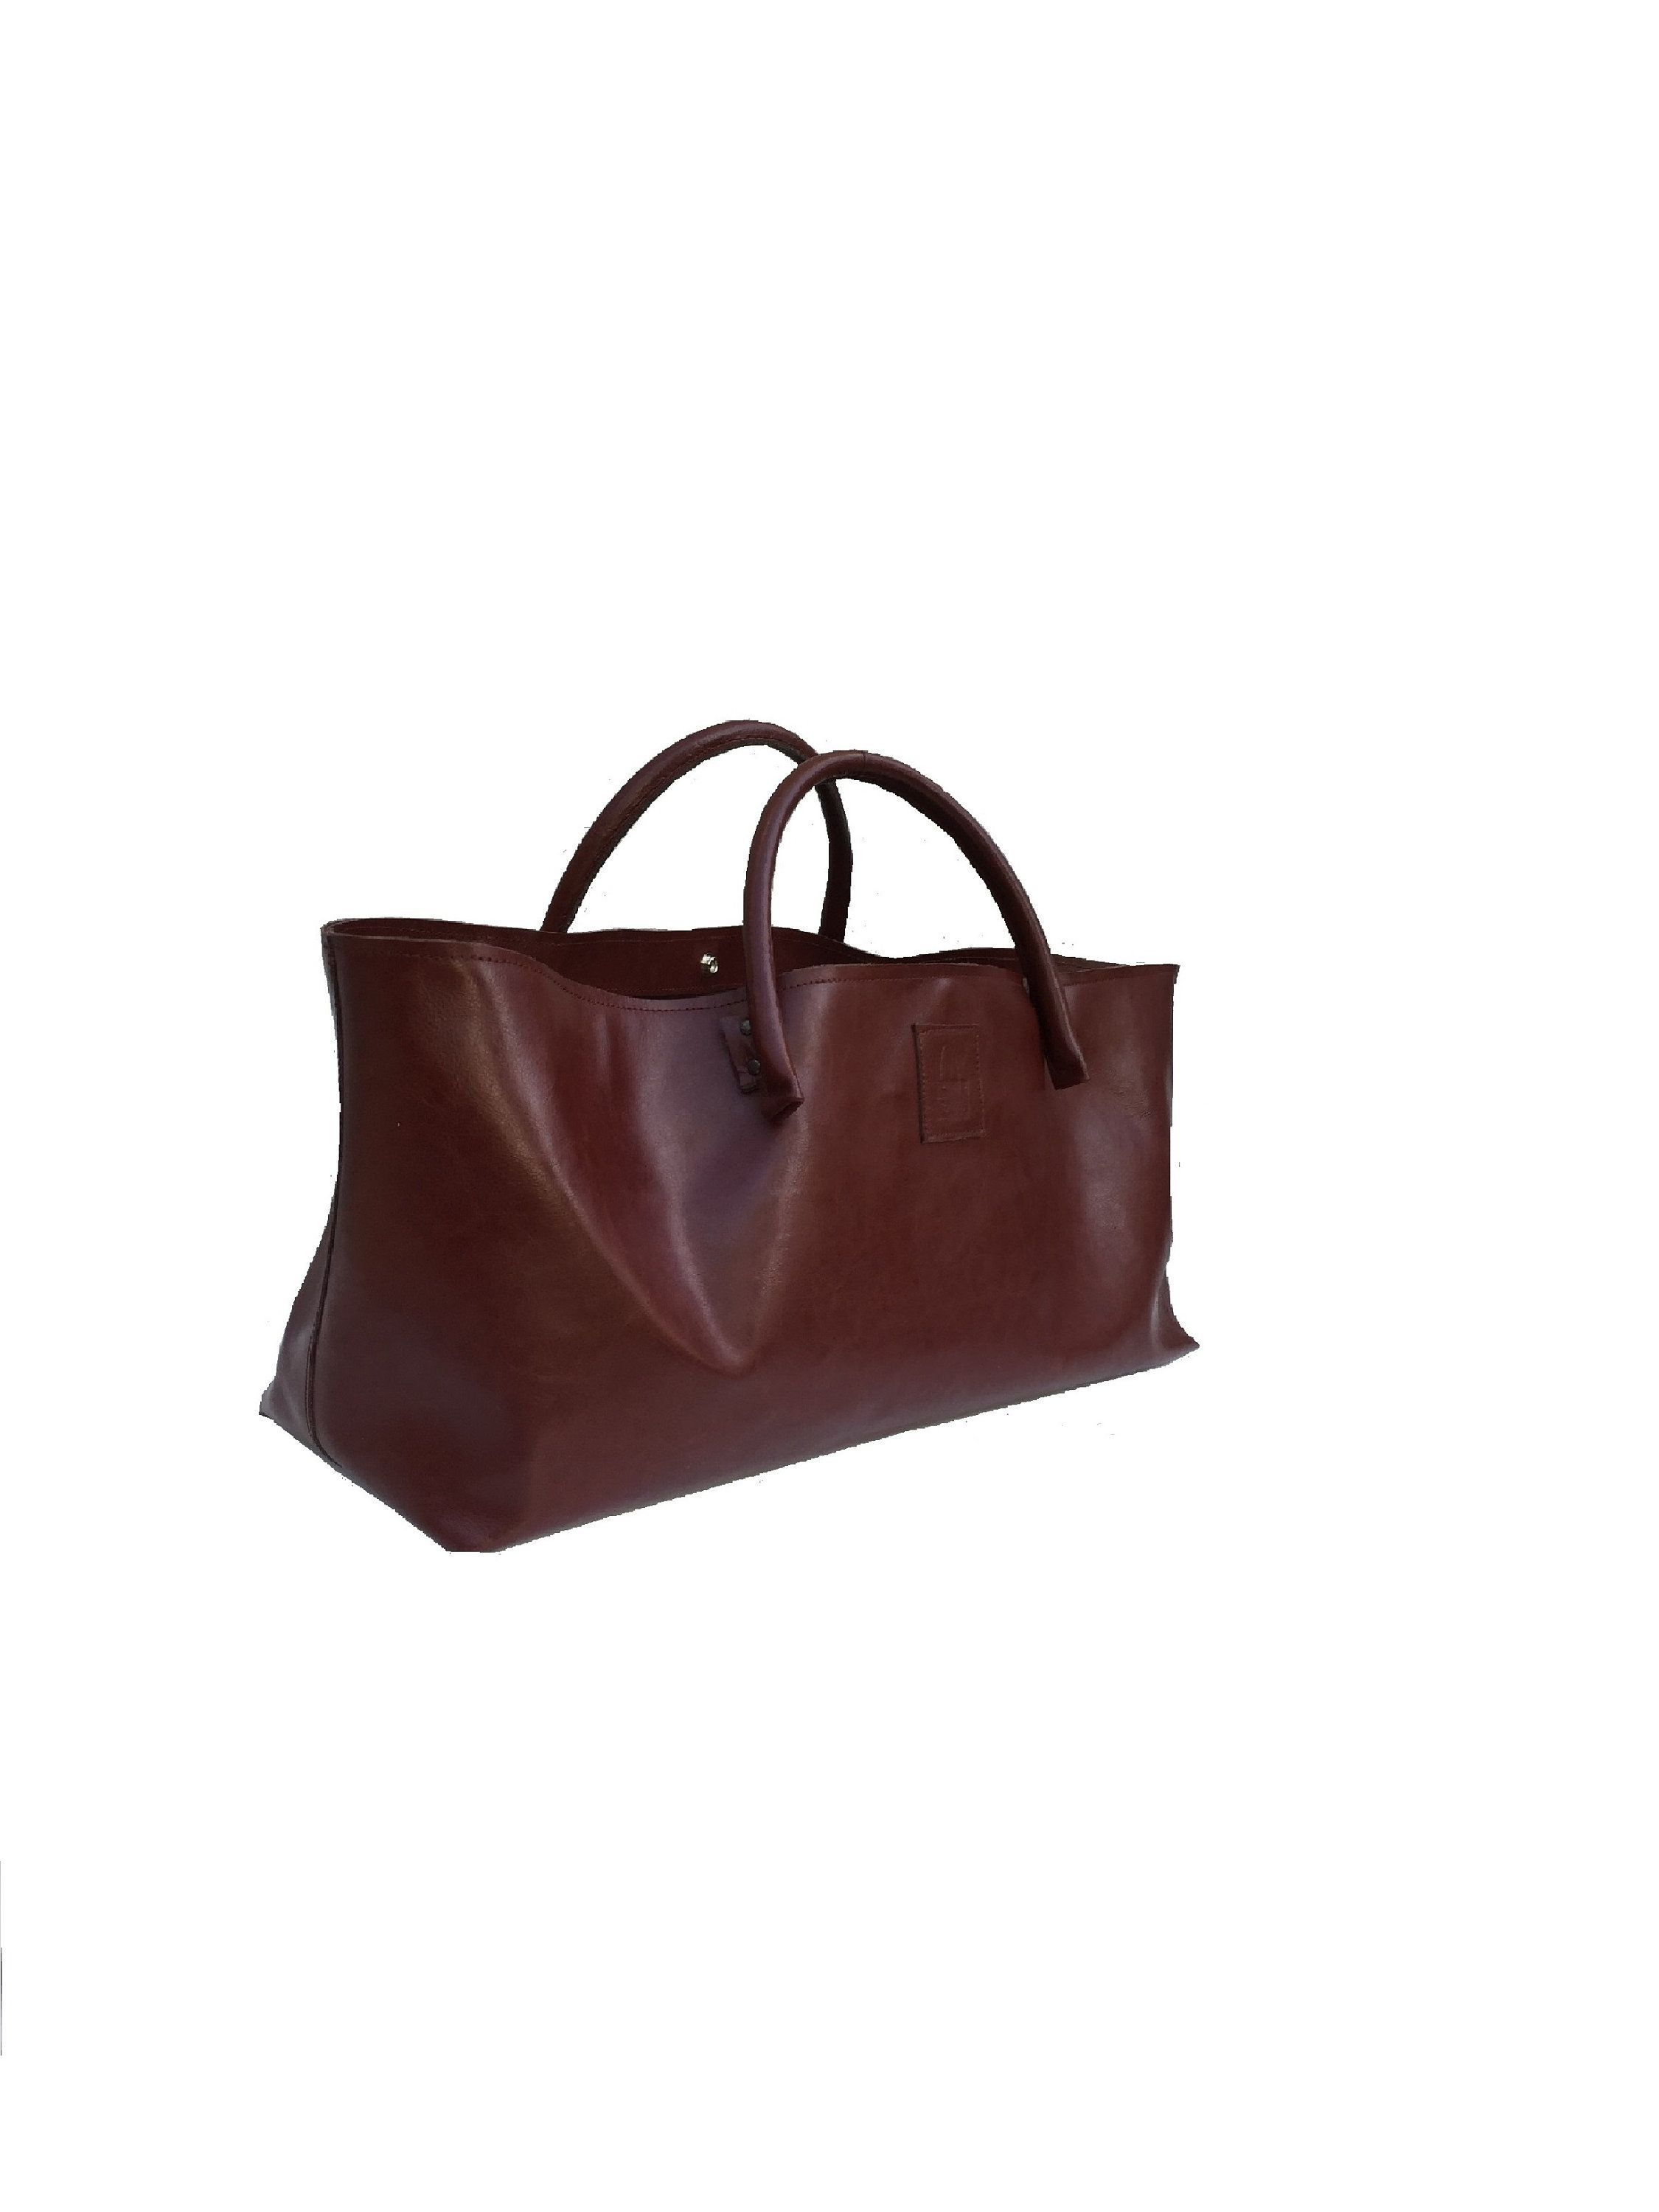 Your Marketplace To Buy And Sell Handmade Items Ad 1 Dein Marktplatz Um Handgemachtes Zu Kaufen In 2020 Leather Shopper Bag Large Leather Tote Bag Leather Tote Bag